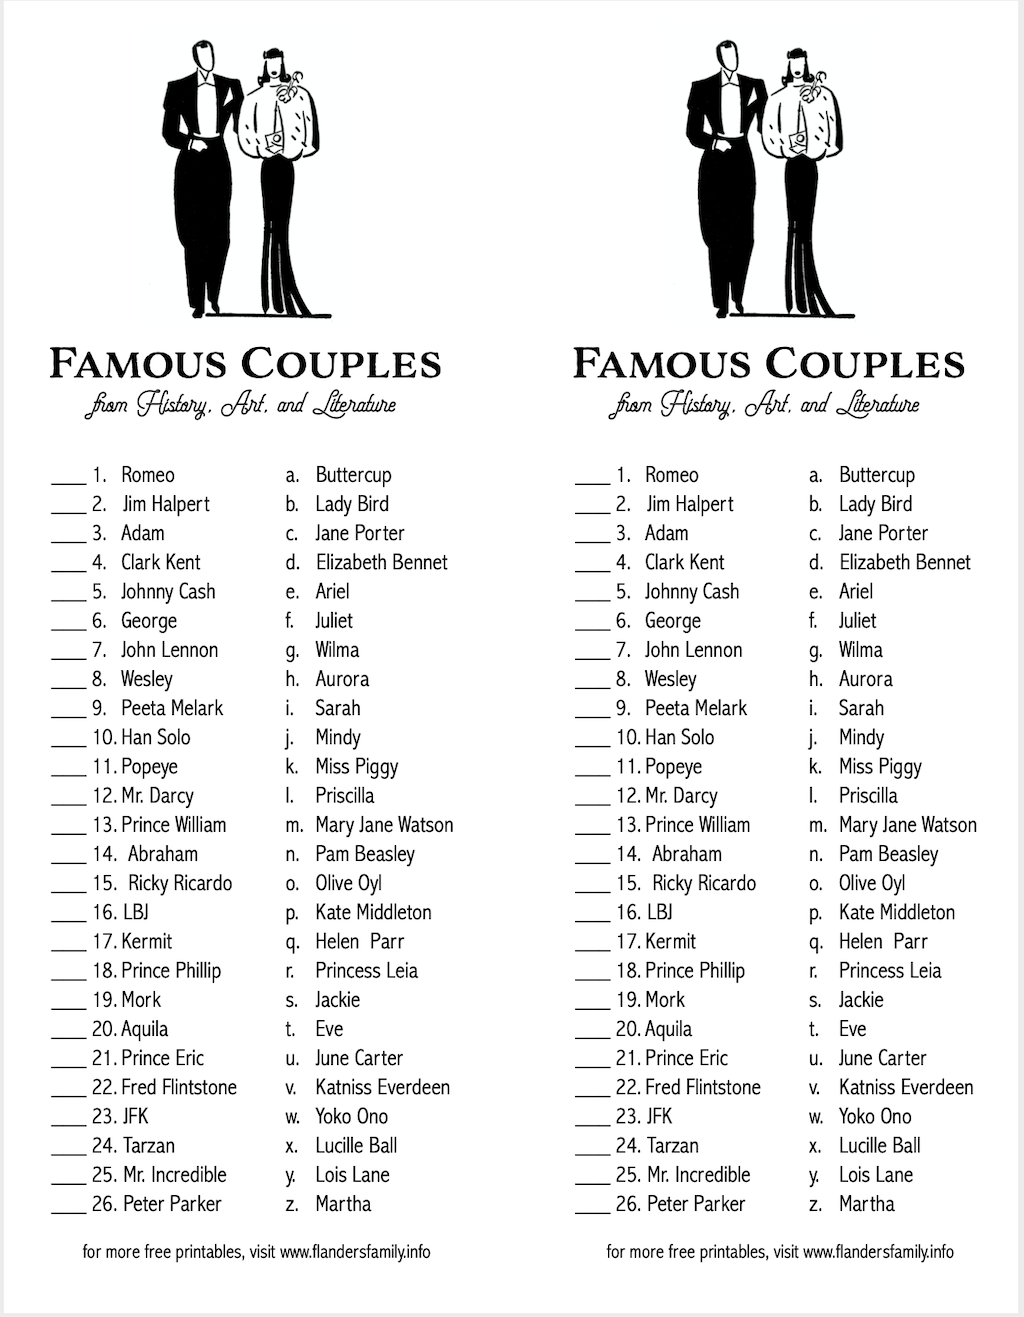 Famous Couples Matching Quiz